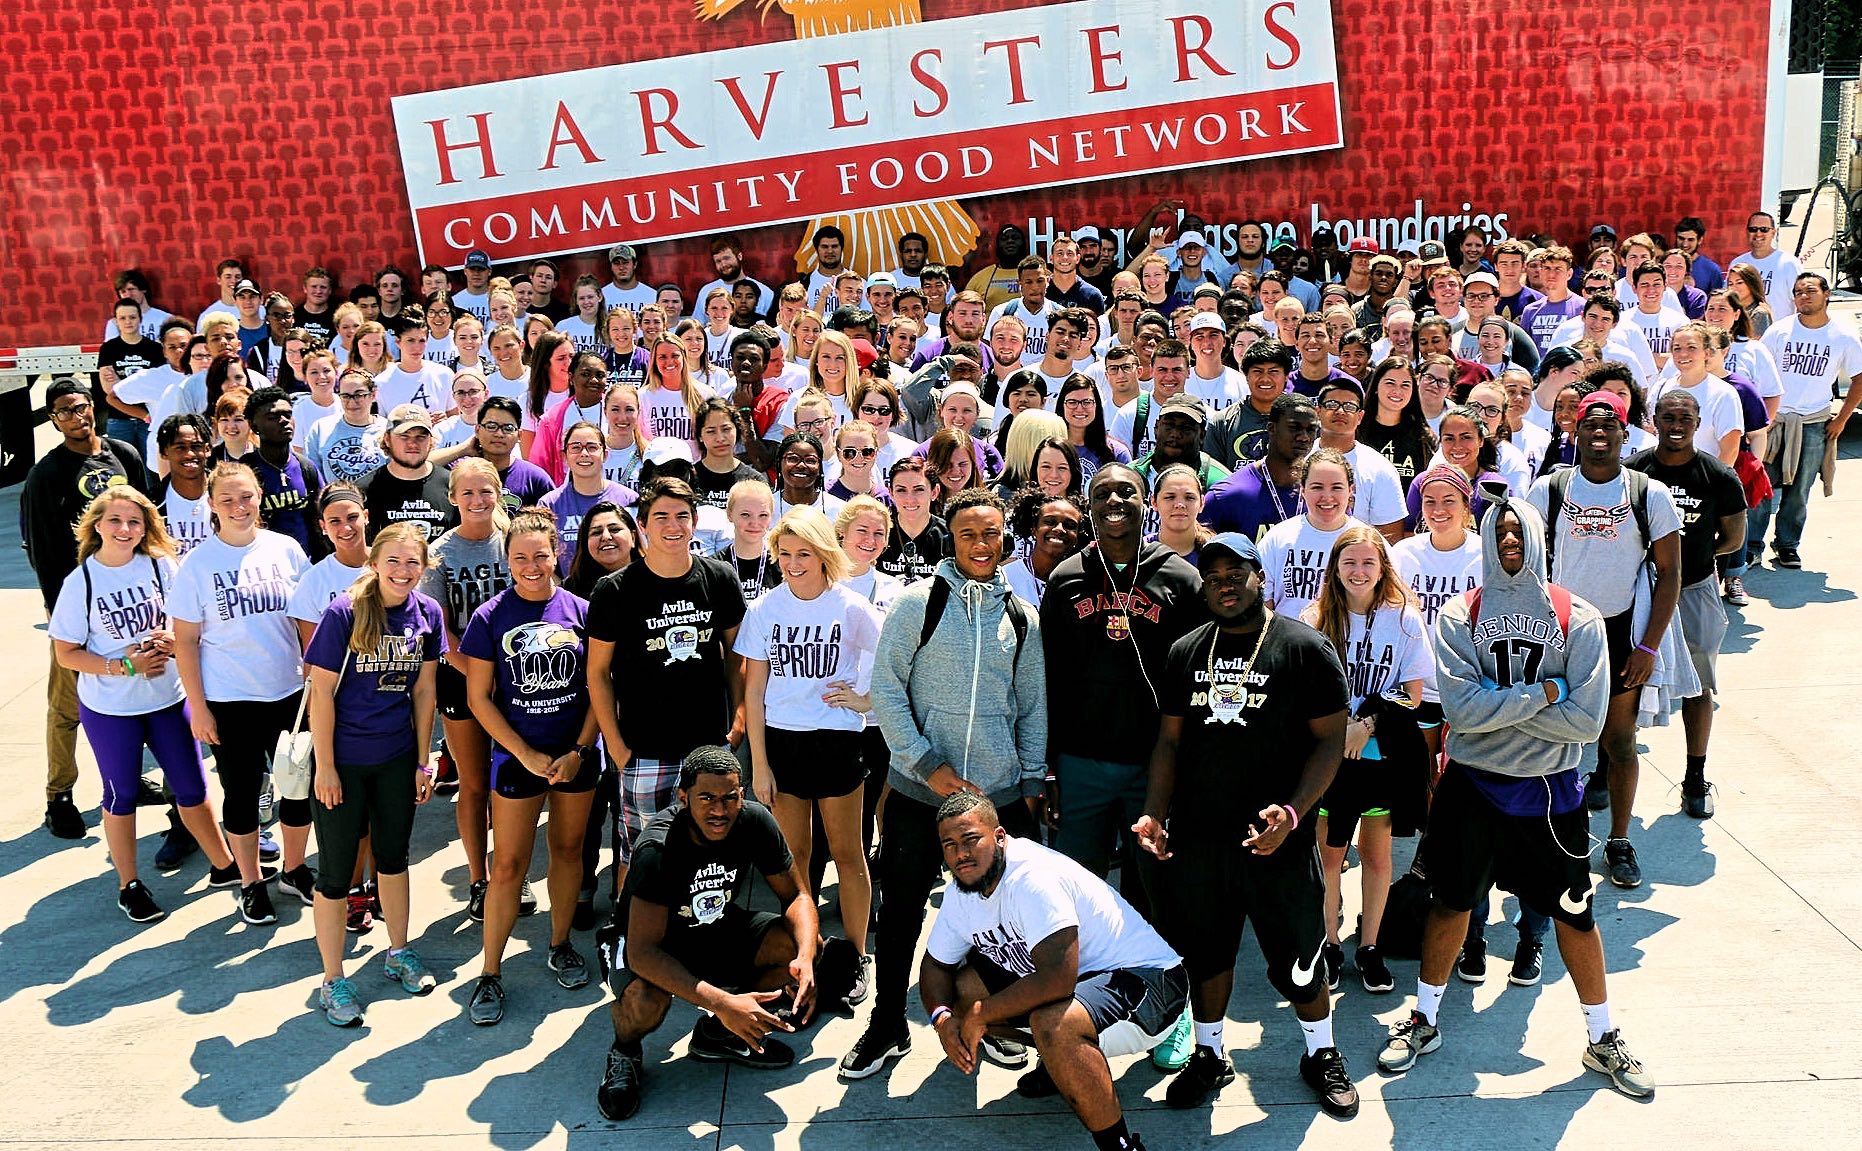 Large group of first year students standing in front of a Harvesters Community Food Network semi-trailer.